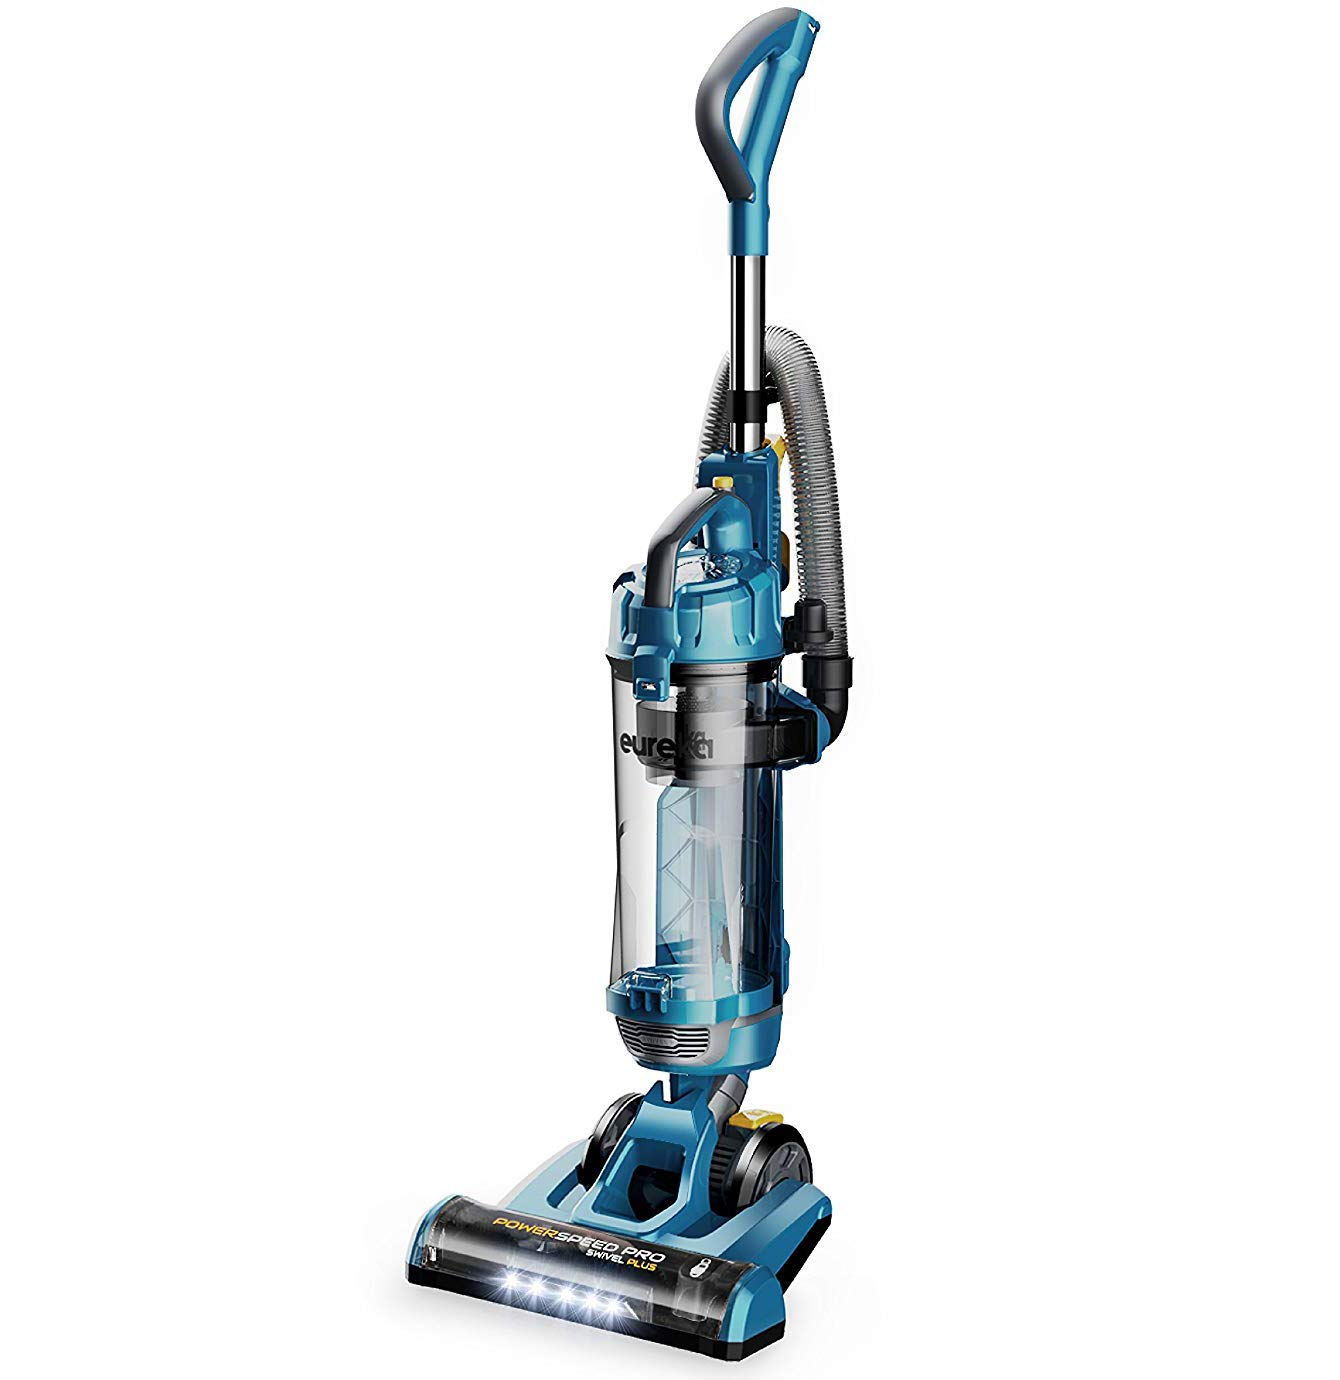 eureka NEU192A Swivel Plus Upright Vacuum Cleaner With Attachments, LED Blue by EUREKA